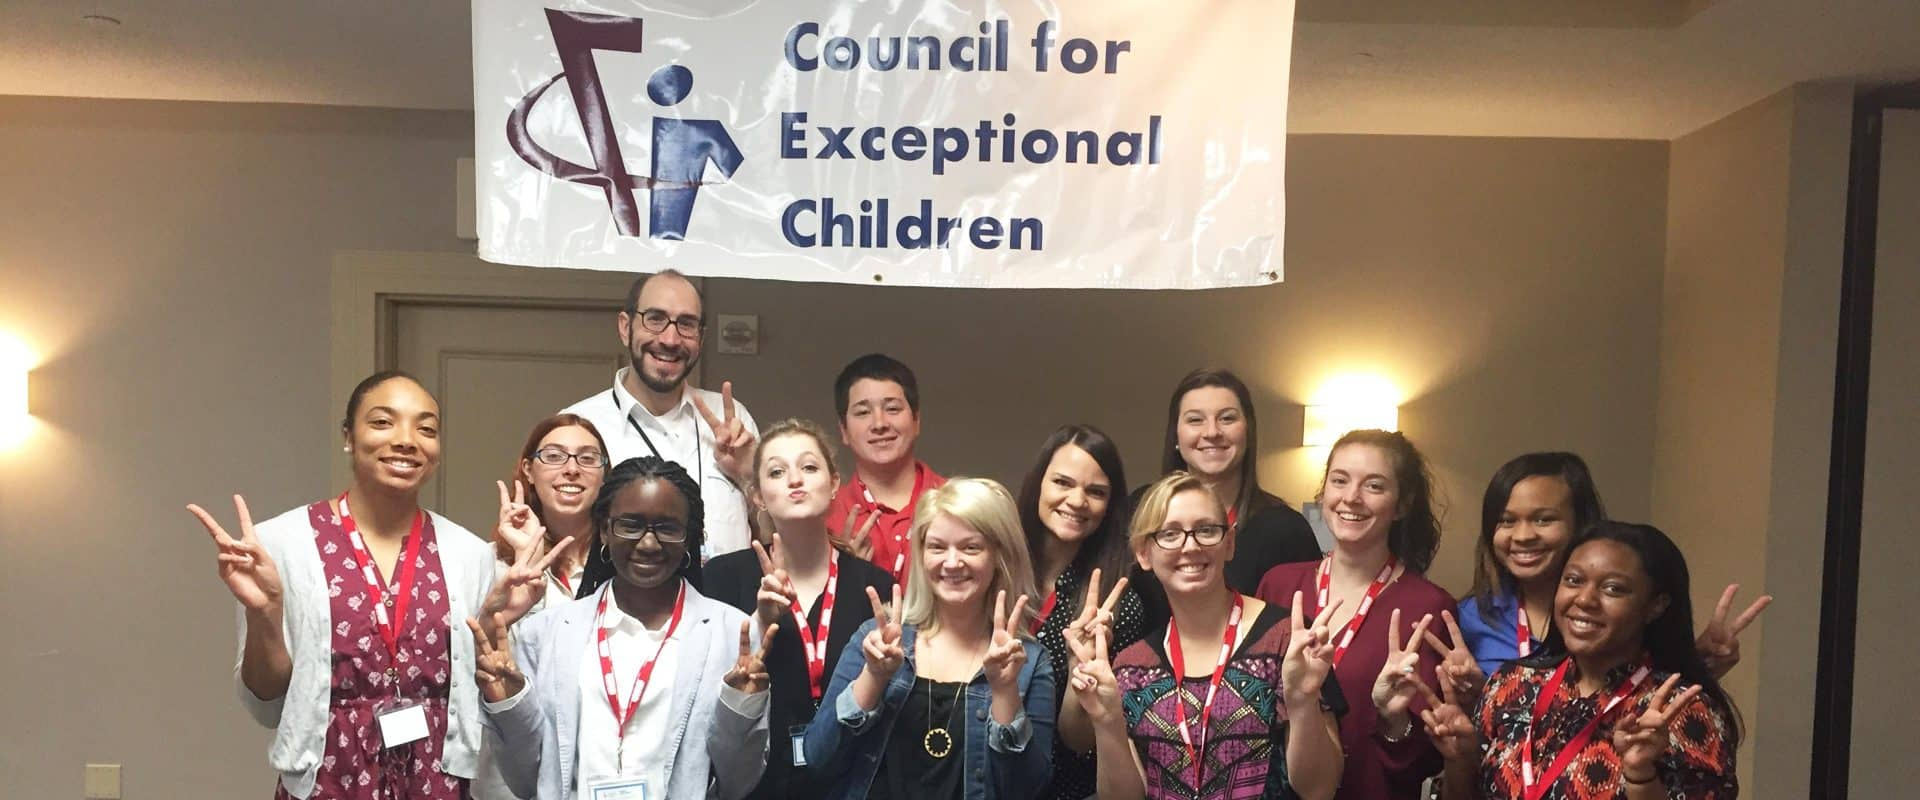 WPU Education Students Participate in North Carolina Council for Exceptional Children Annual Conference in Wilmington, NC